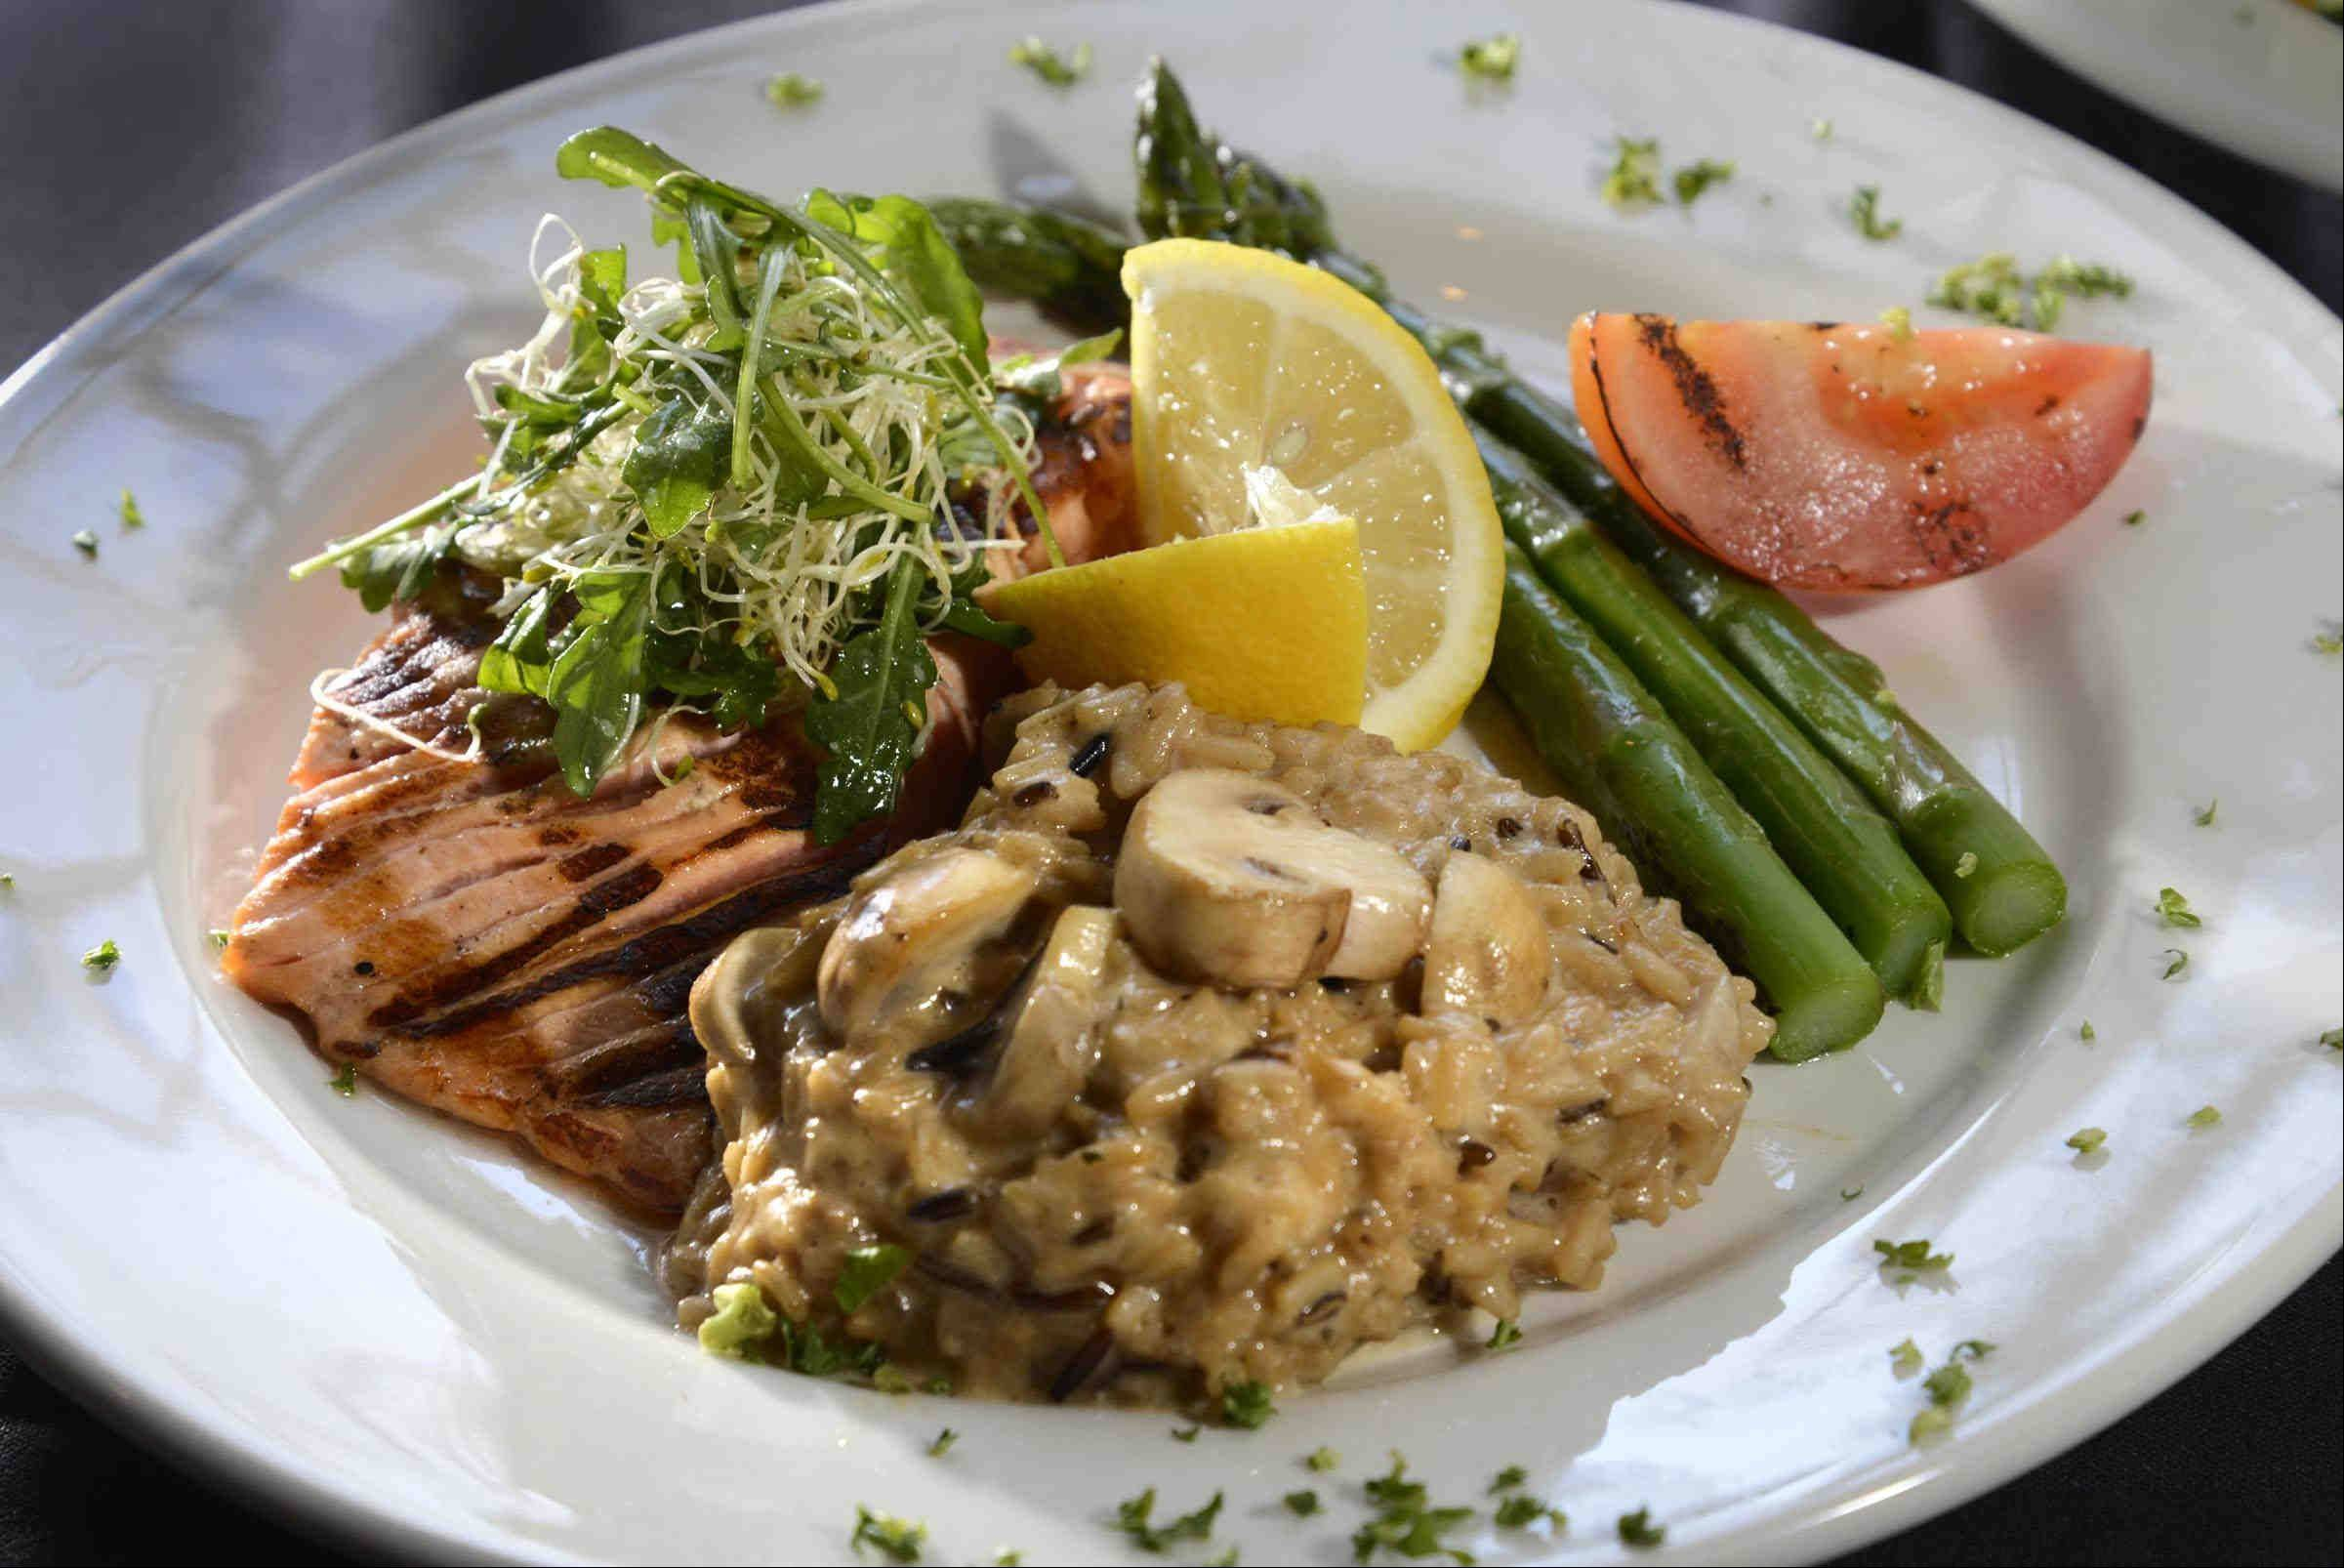 Cedar plank salmon with mushroom risotto and alfalfa arugula salad at Pier 99 in Port Barrington.